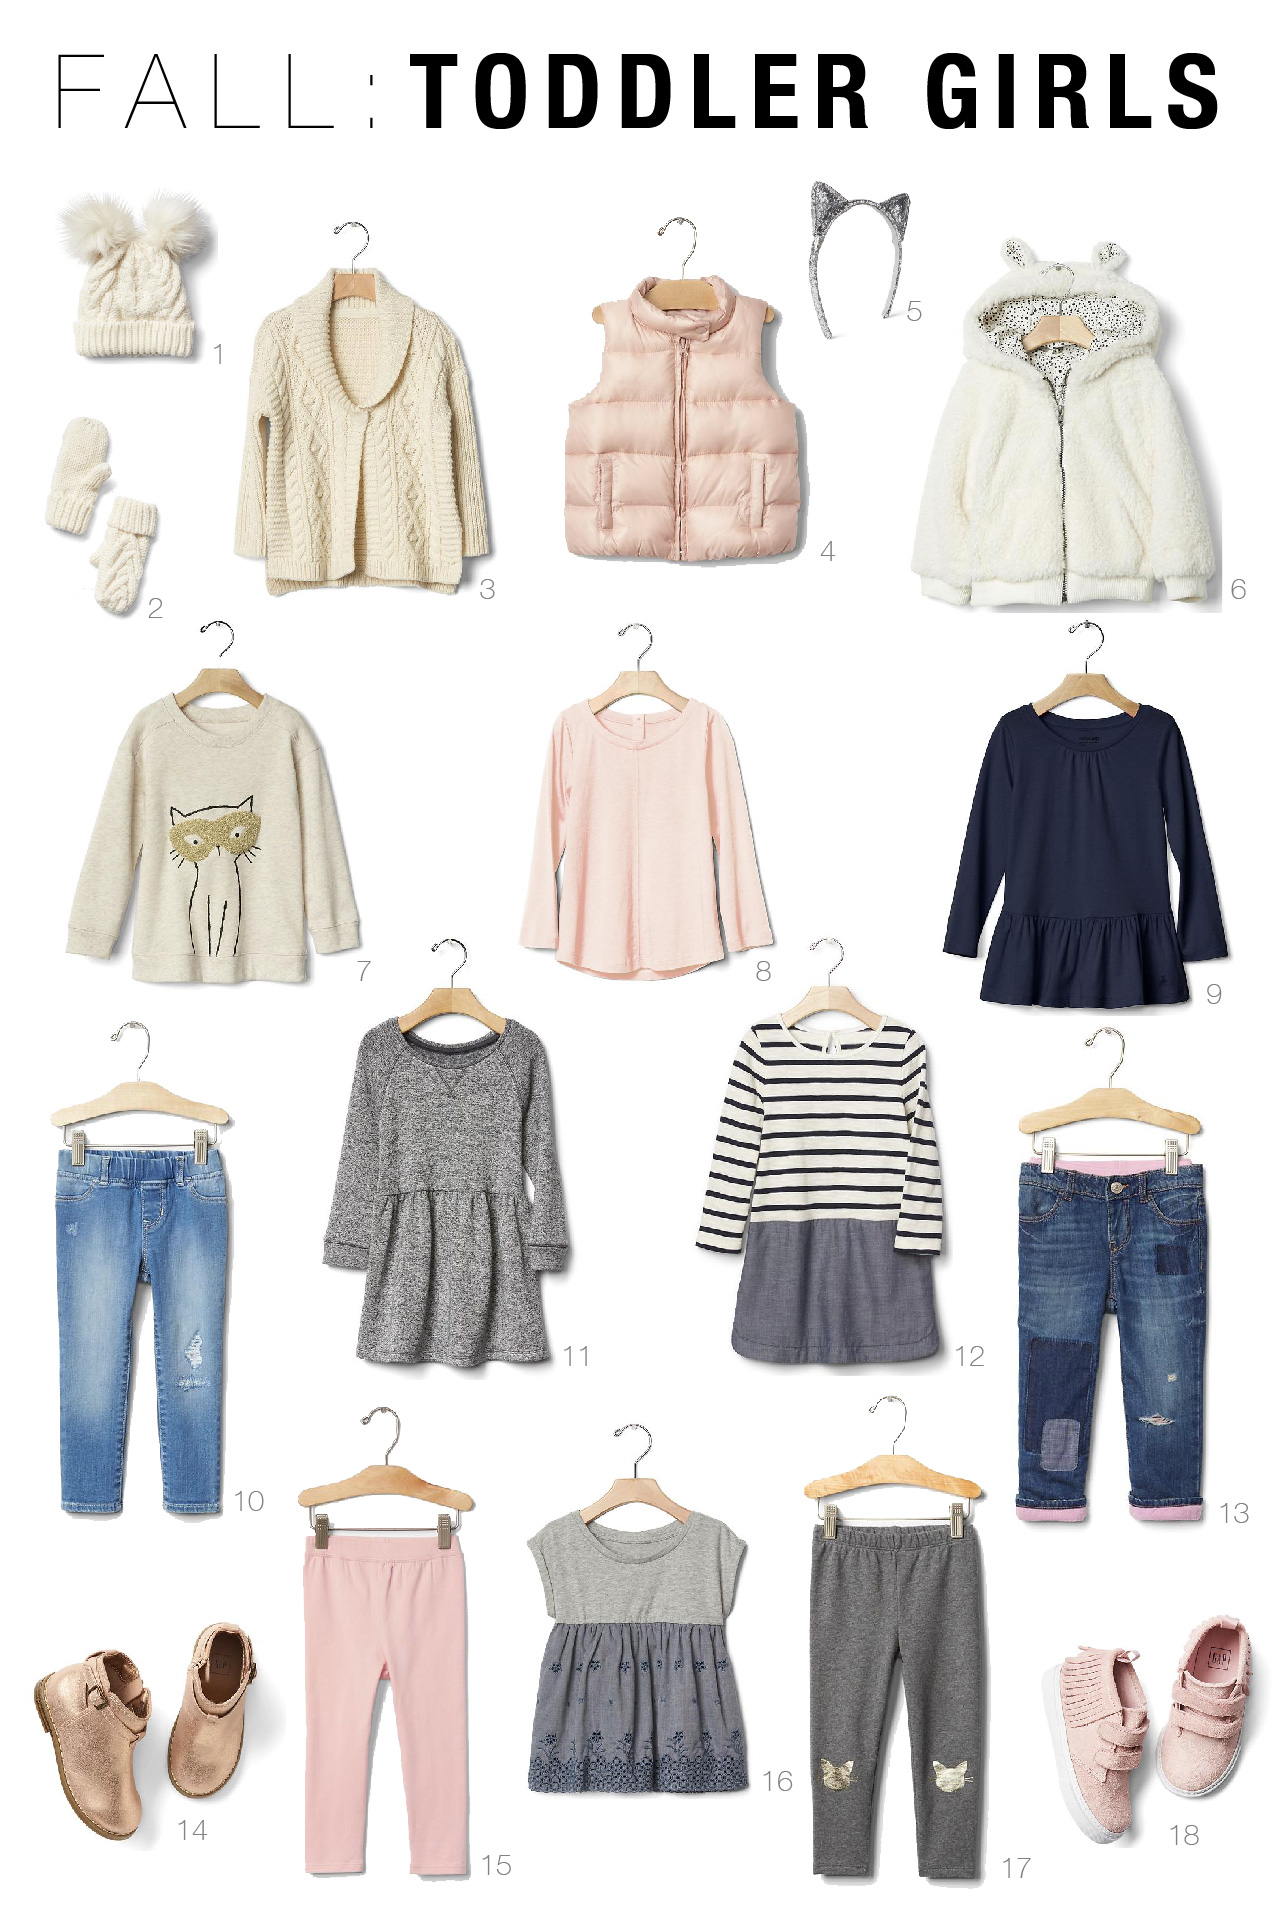 Fall Capsule Wardrobe From H M: Fall Capsule Wardrobes For Toddlers And Kids